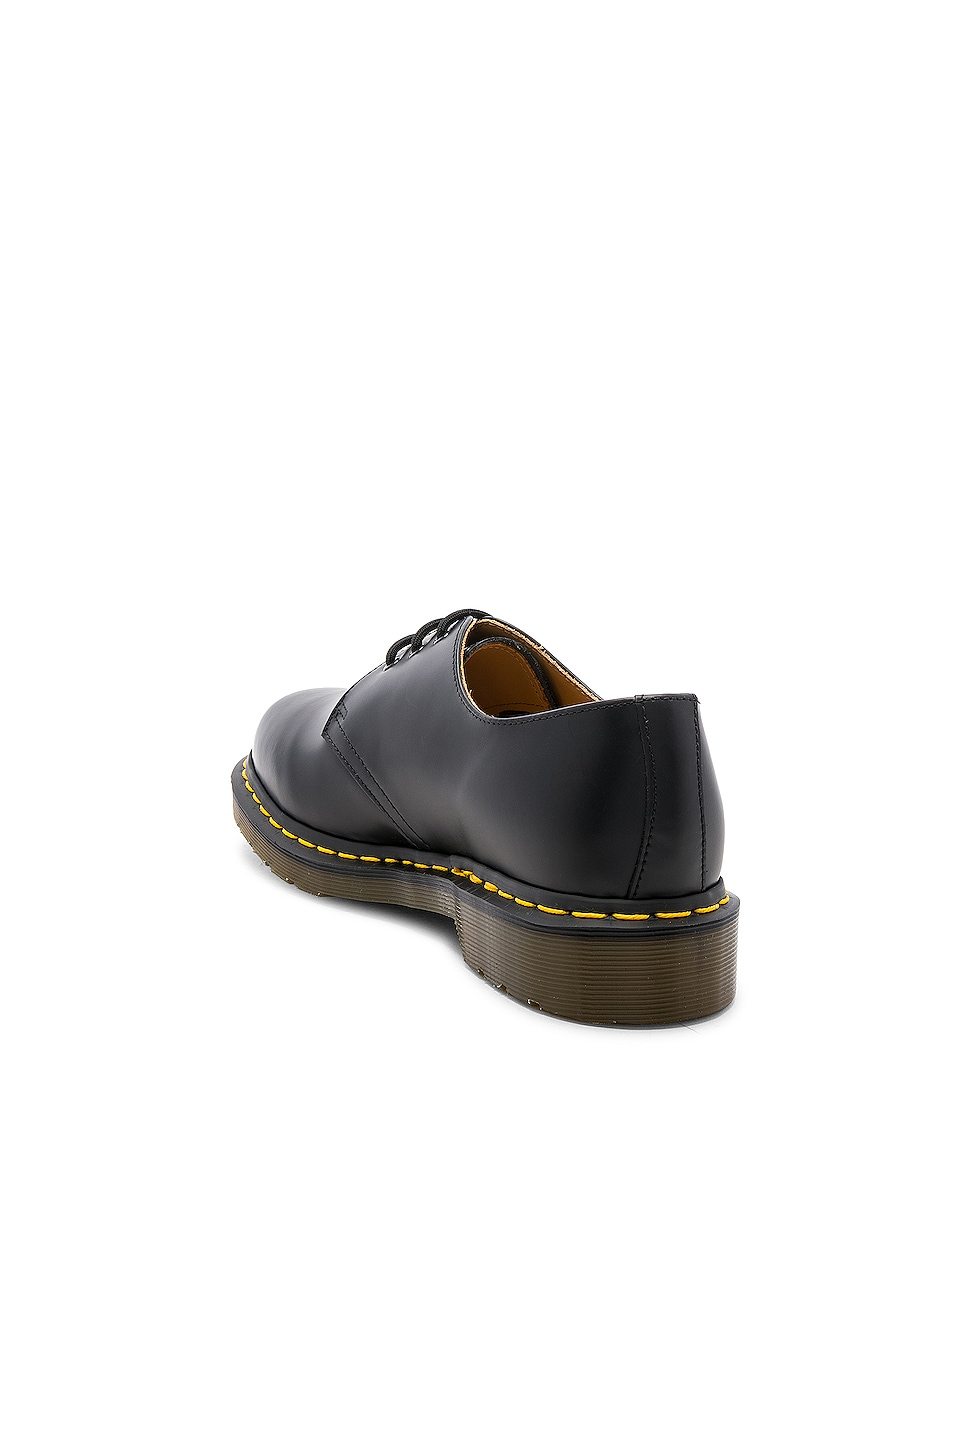 Image 3 of Dr. Martens 1461 3 Eye Gibson in Black